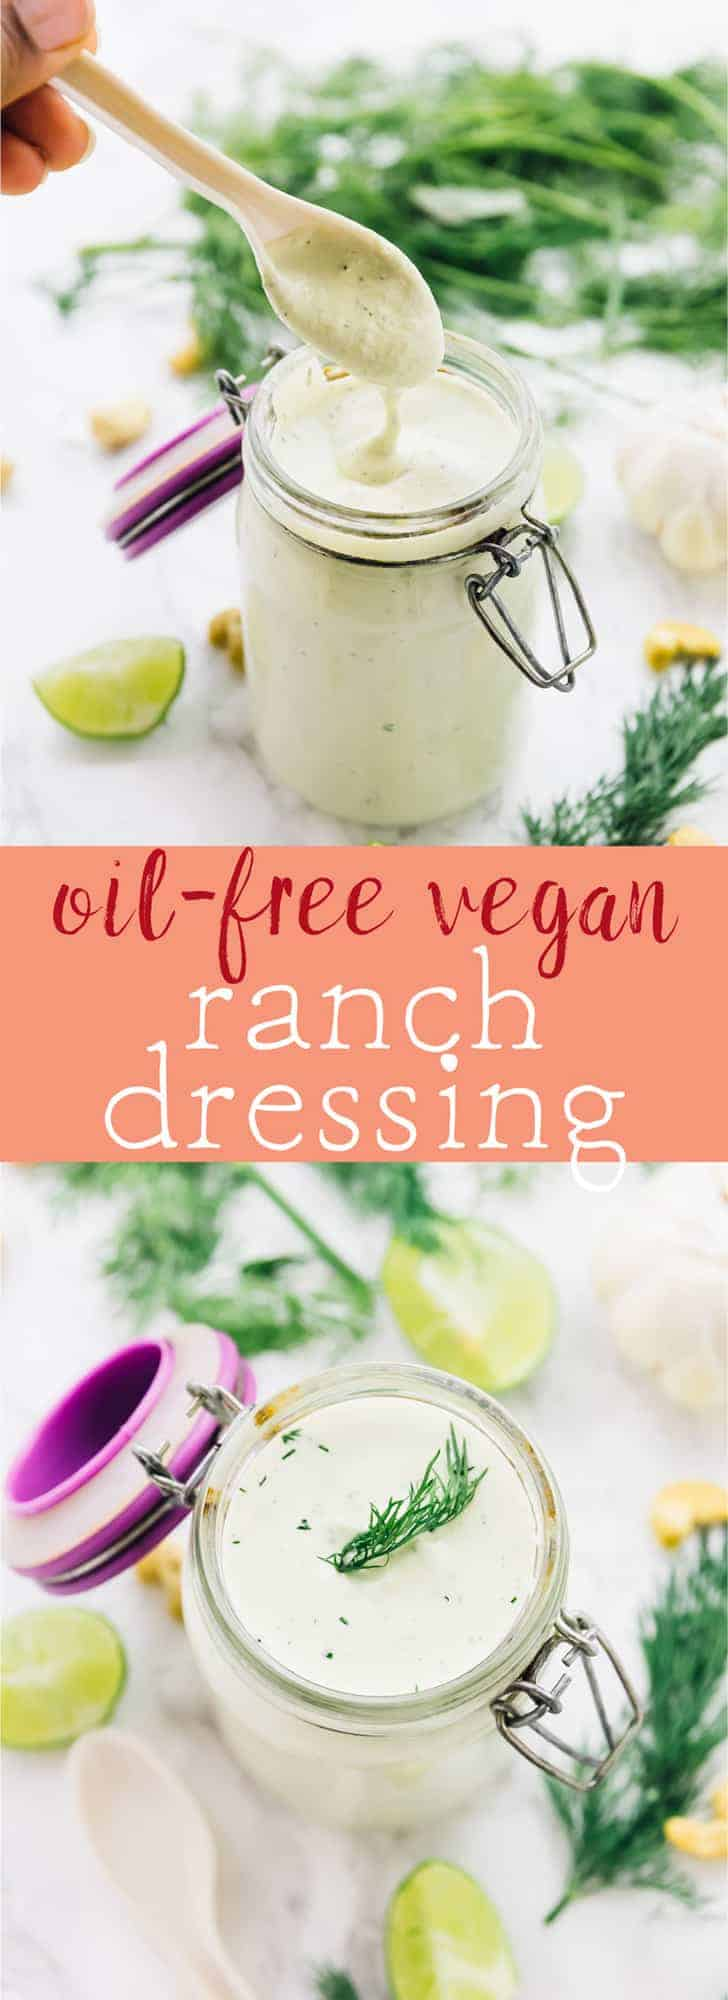 This Vegan Ranch Dressing tastes as tangy and is just as creamy as your favourite regular ranch dressing!! It's oil-free, dairy free and really amps up a salad! via https://jessicainthekitchen.com